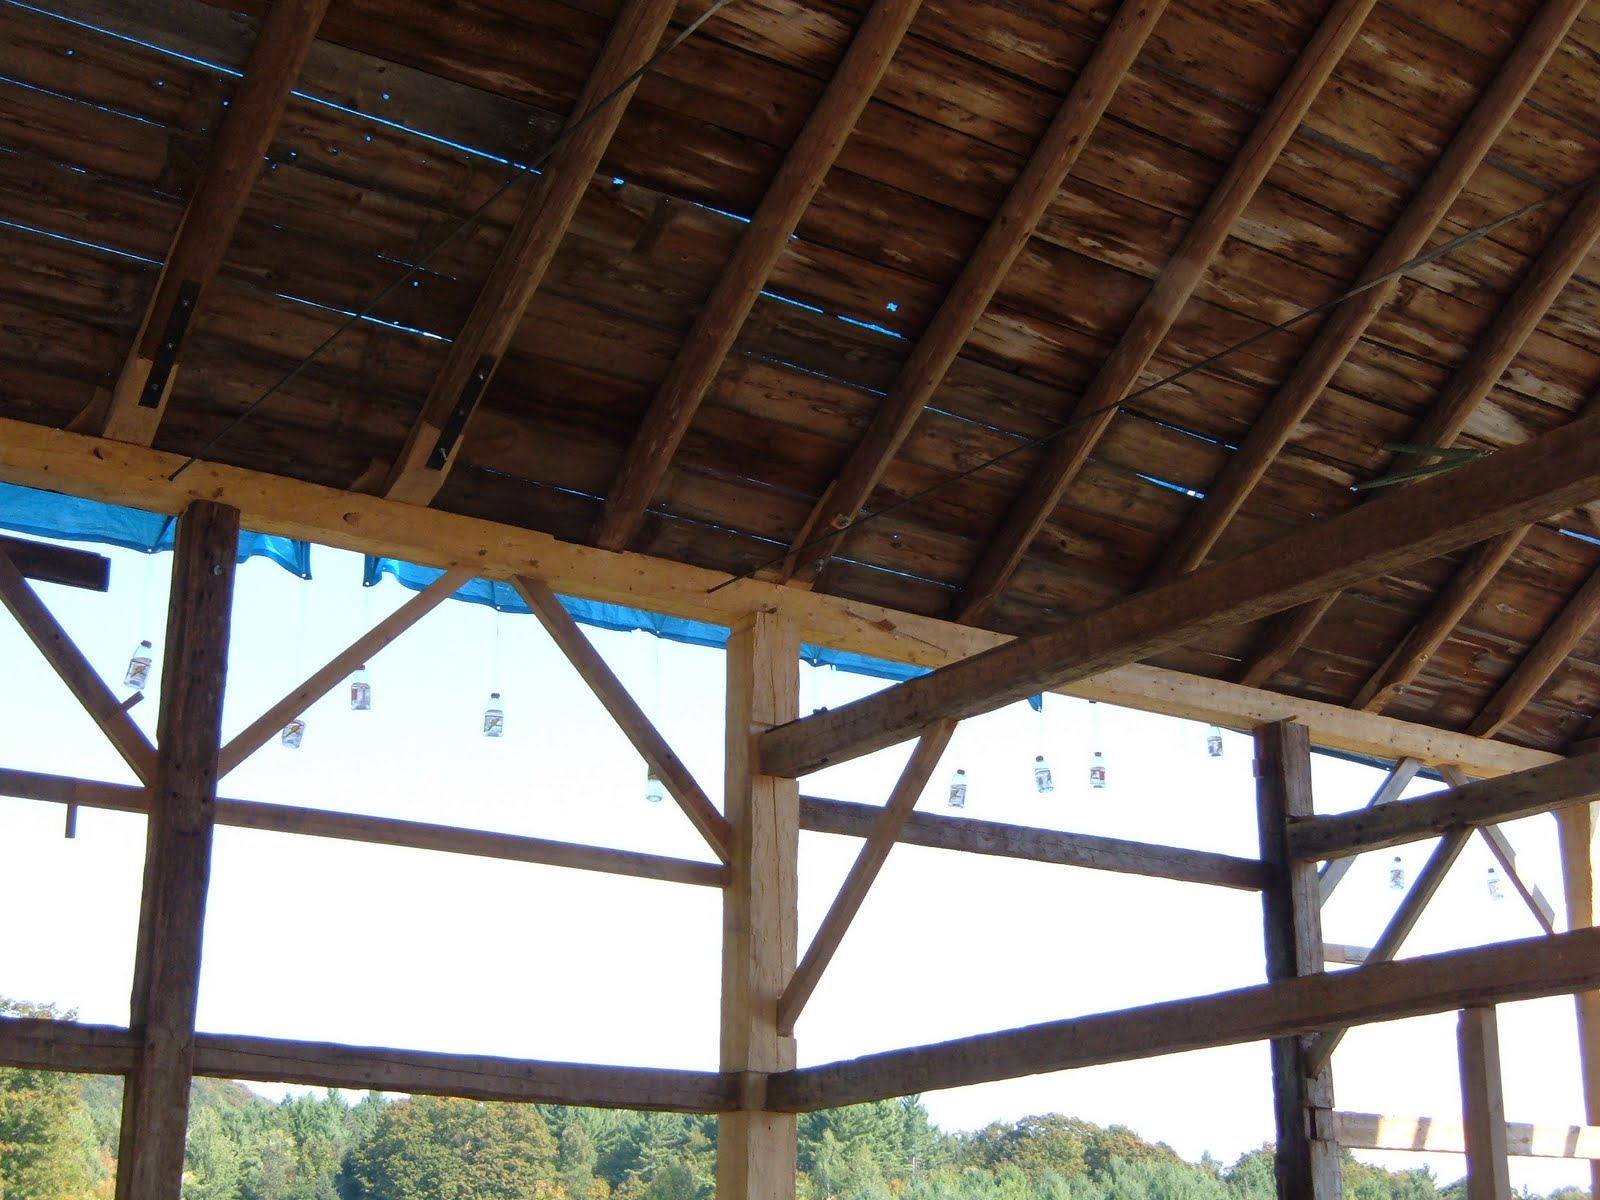 The restored eave wall is back in place and supporting the roof again.